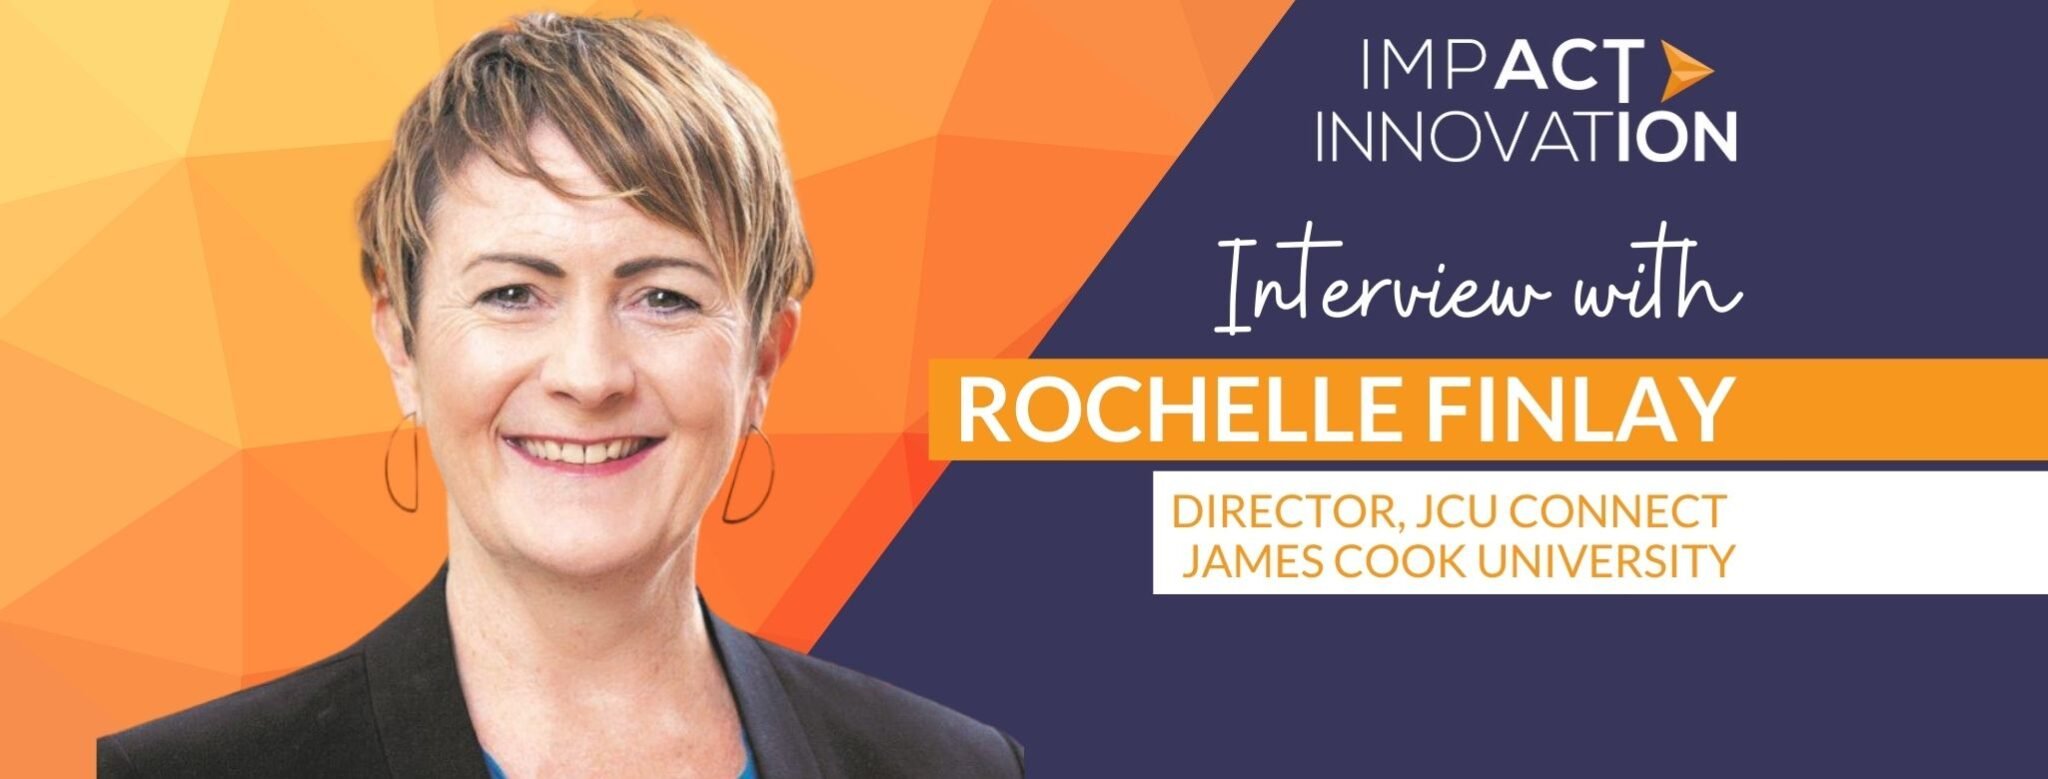 Interview with Rochelle Finlay James Cook University